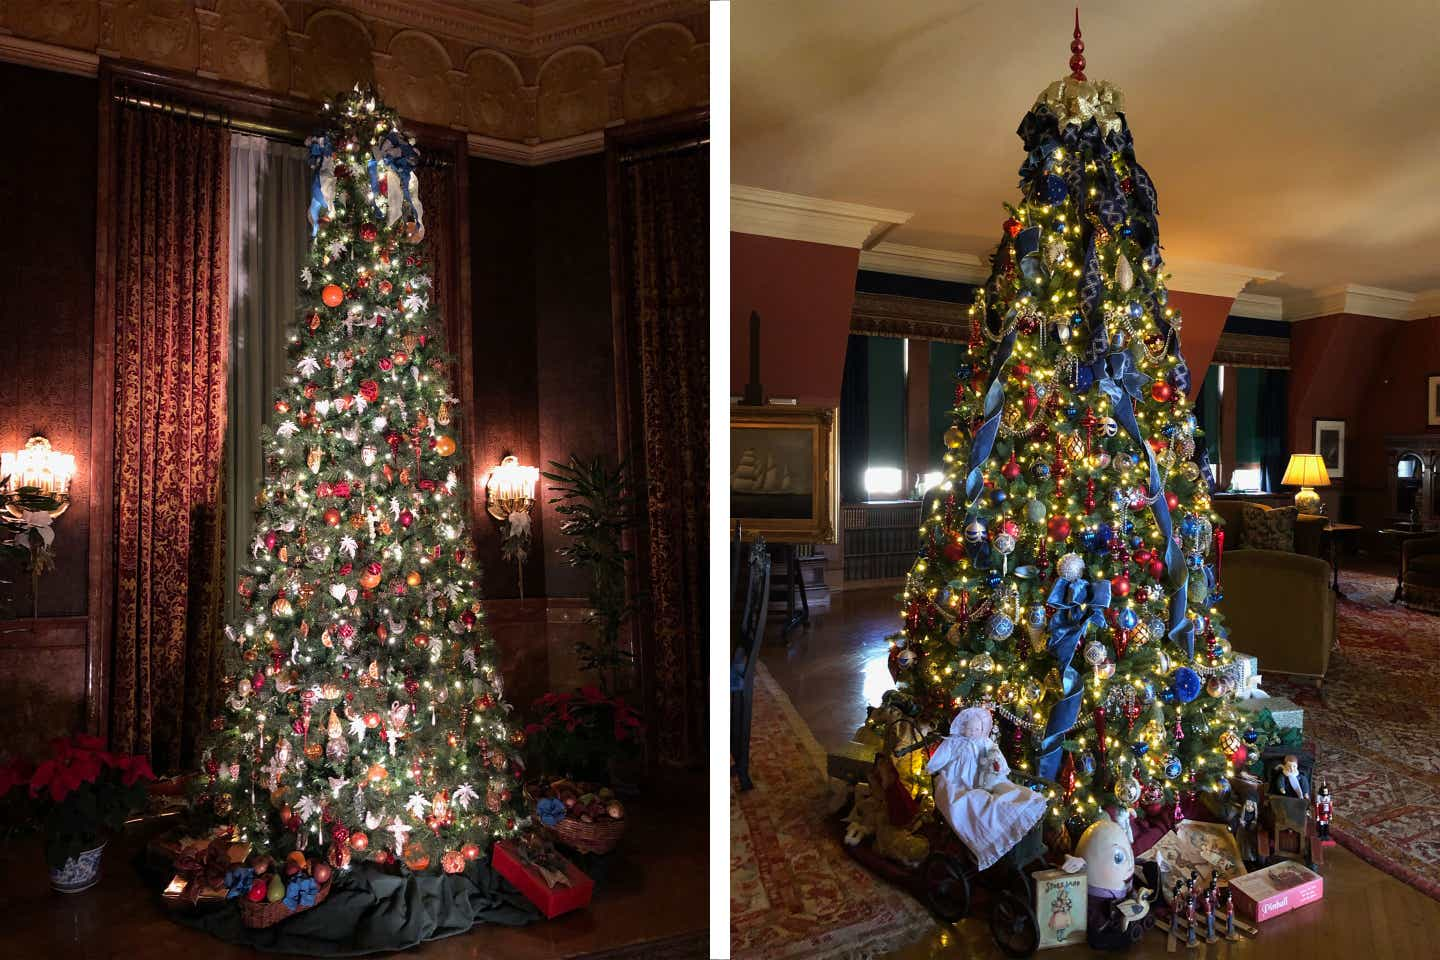 Left: A large Christmas tree decorated with cascading red ribbons and various ornaments. Right: A large Christmas tree decorated with cascading blue ribbons, various ornaments and toys beneath the tree.